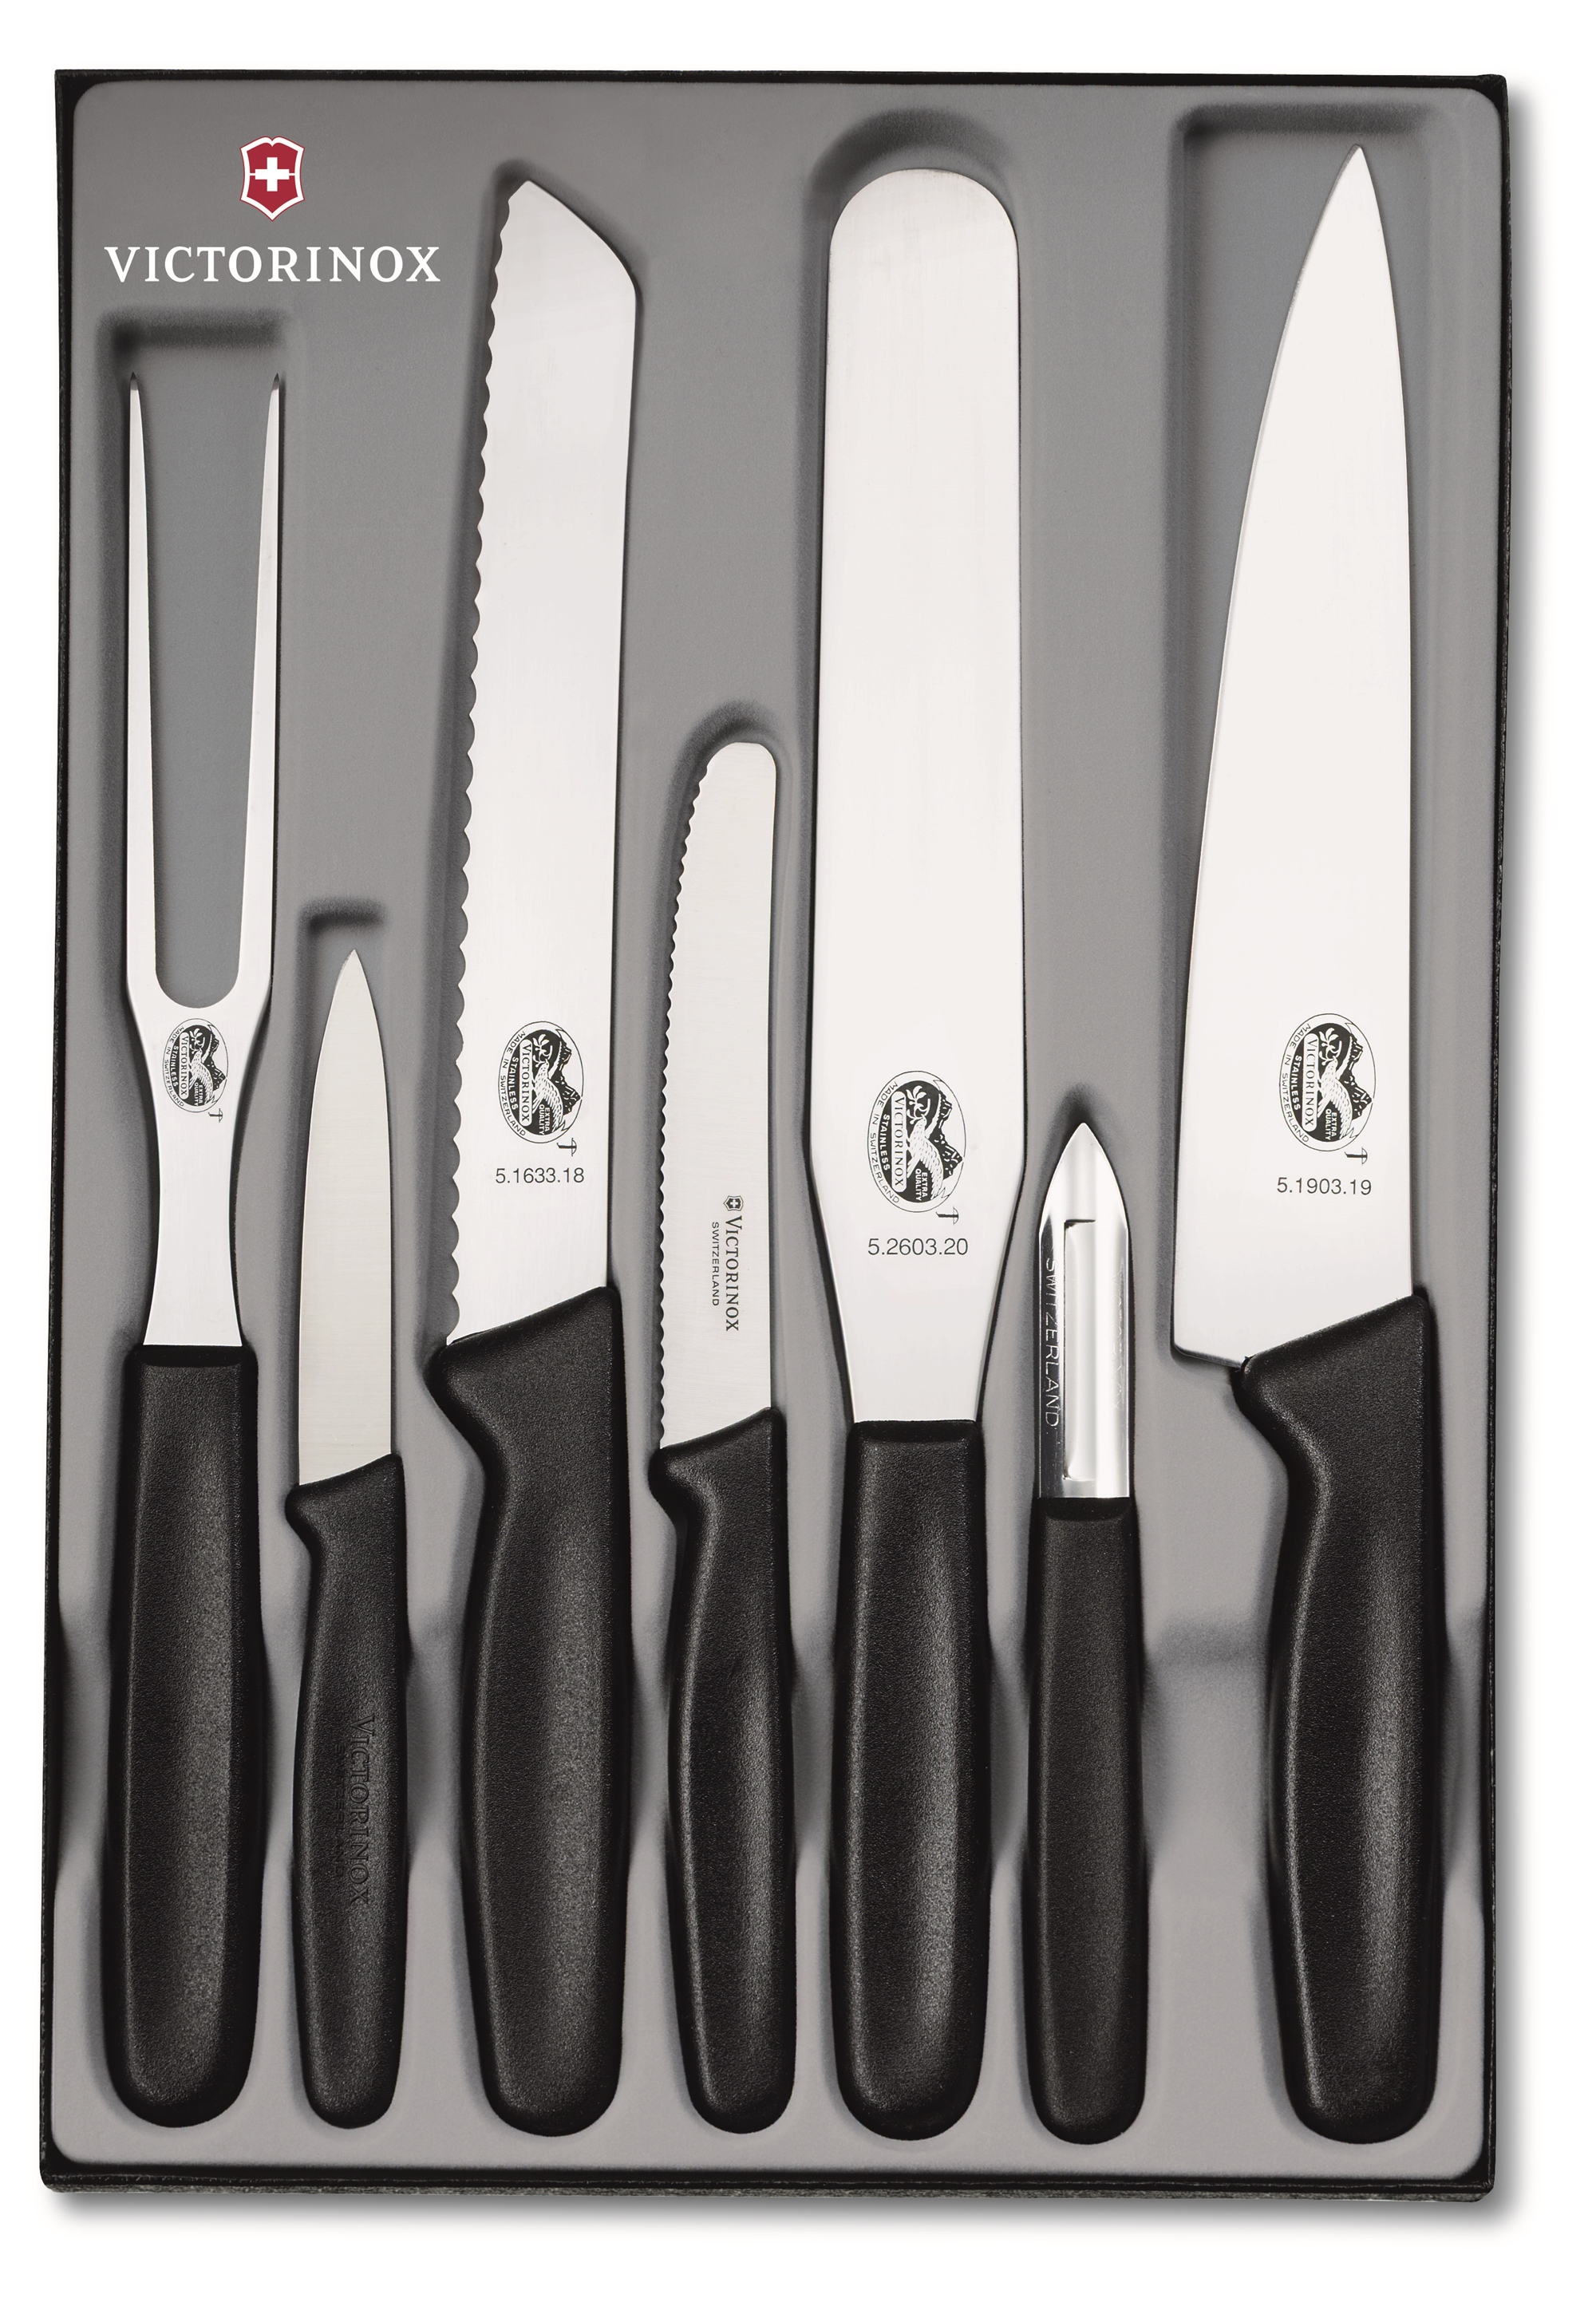 Victorinox kitchen set 7 pieces for Victorinox kitchen knife set 5 pieces